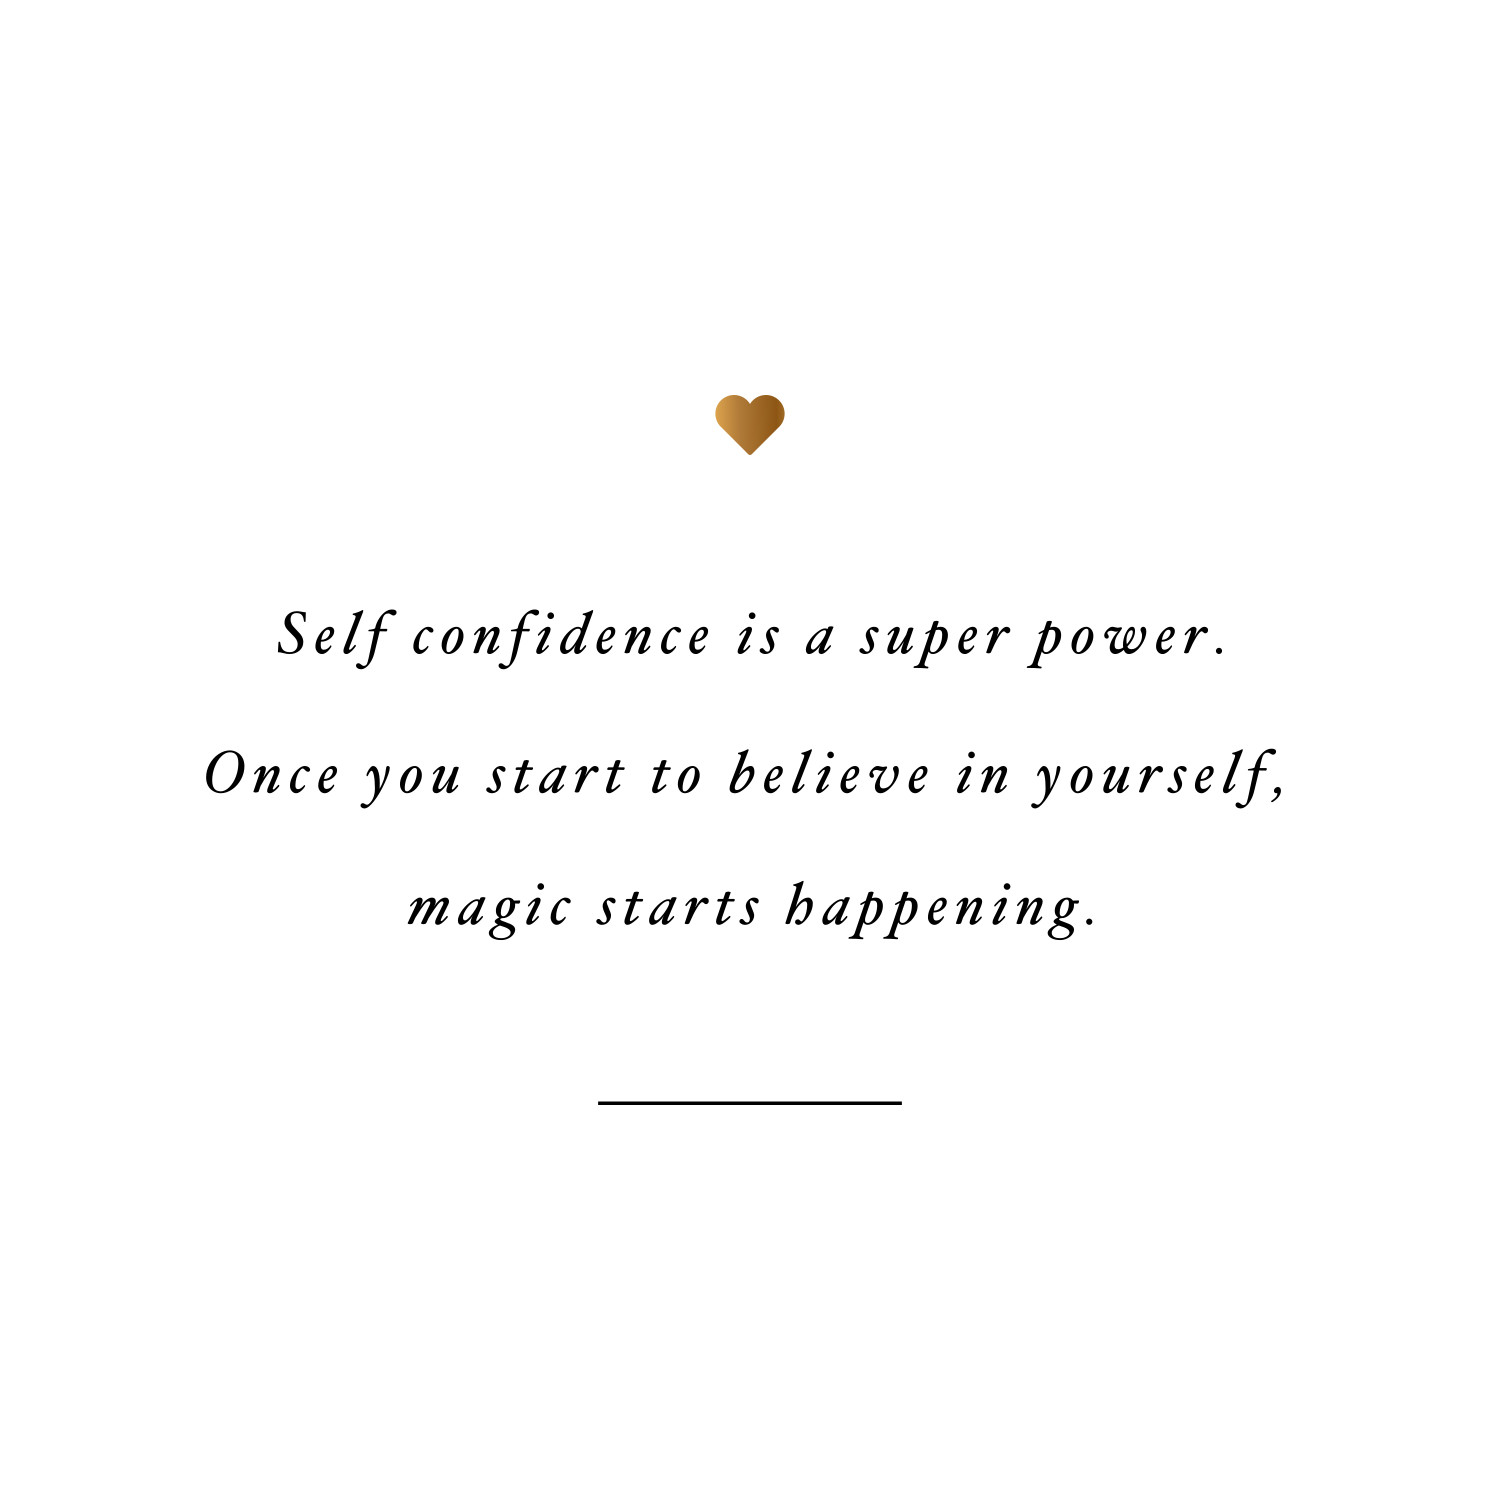 Quotes About Self Confidence Self Confidence Is A Super Power  Exercise And Training Motivation